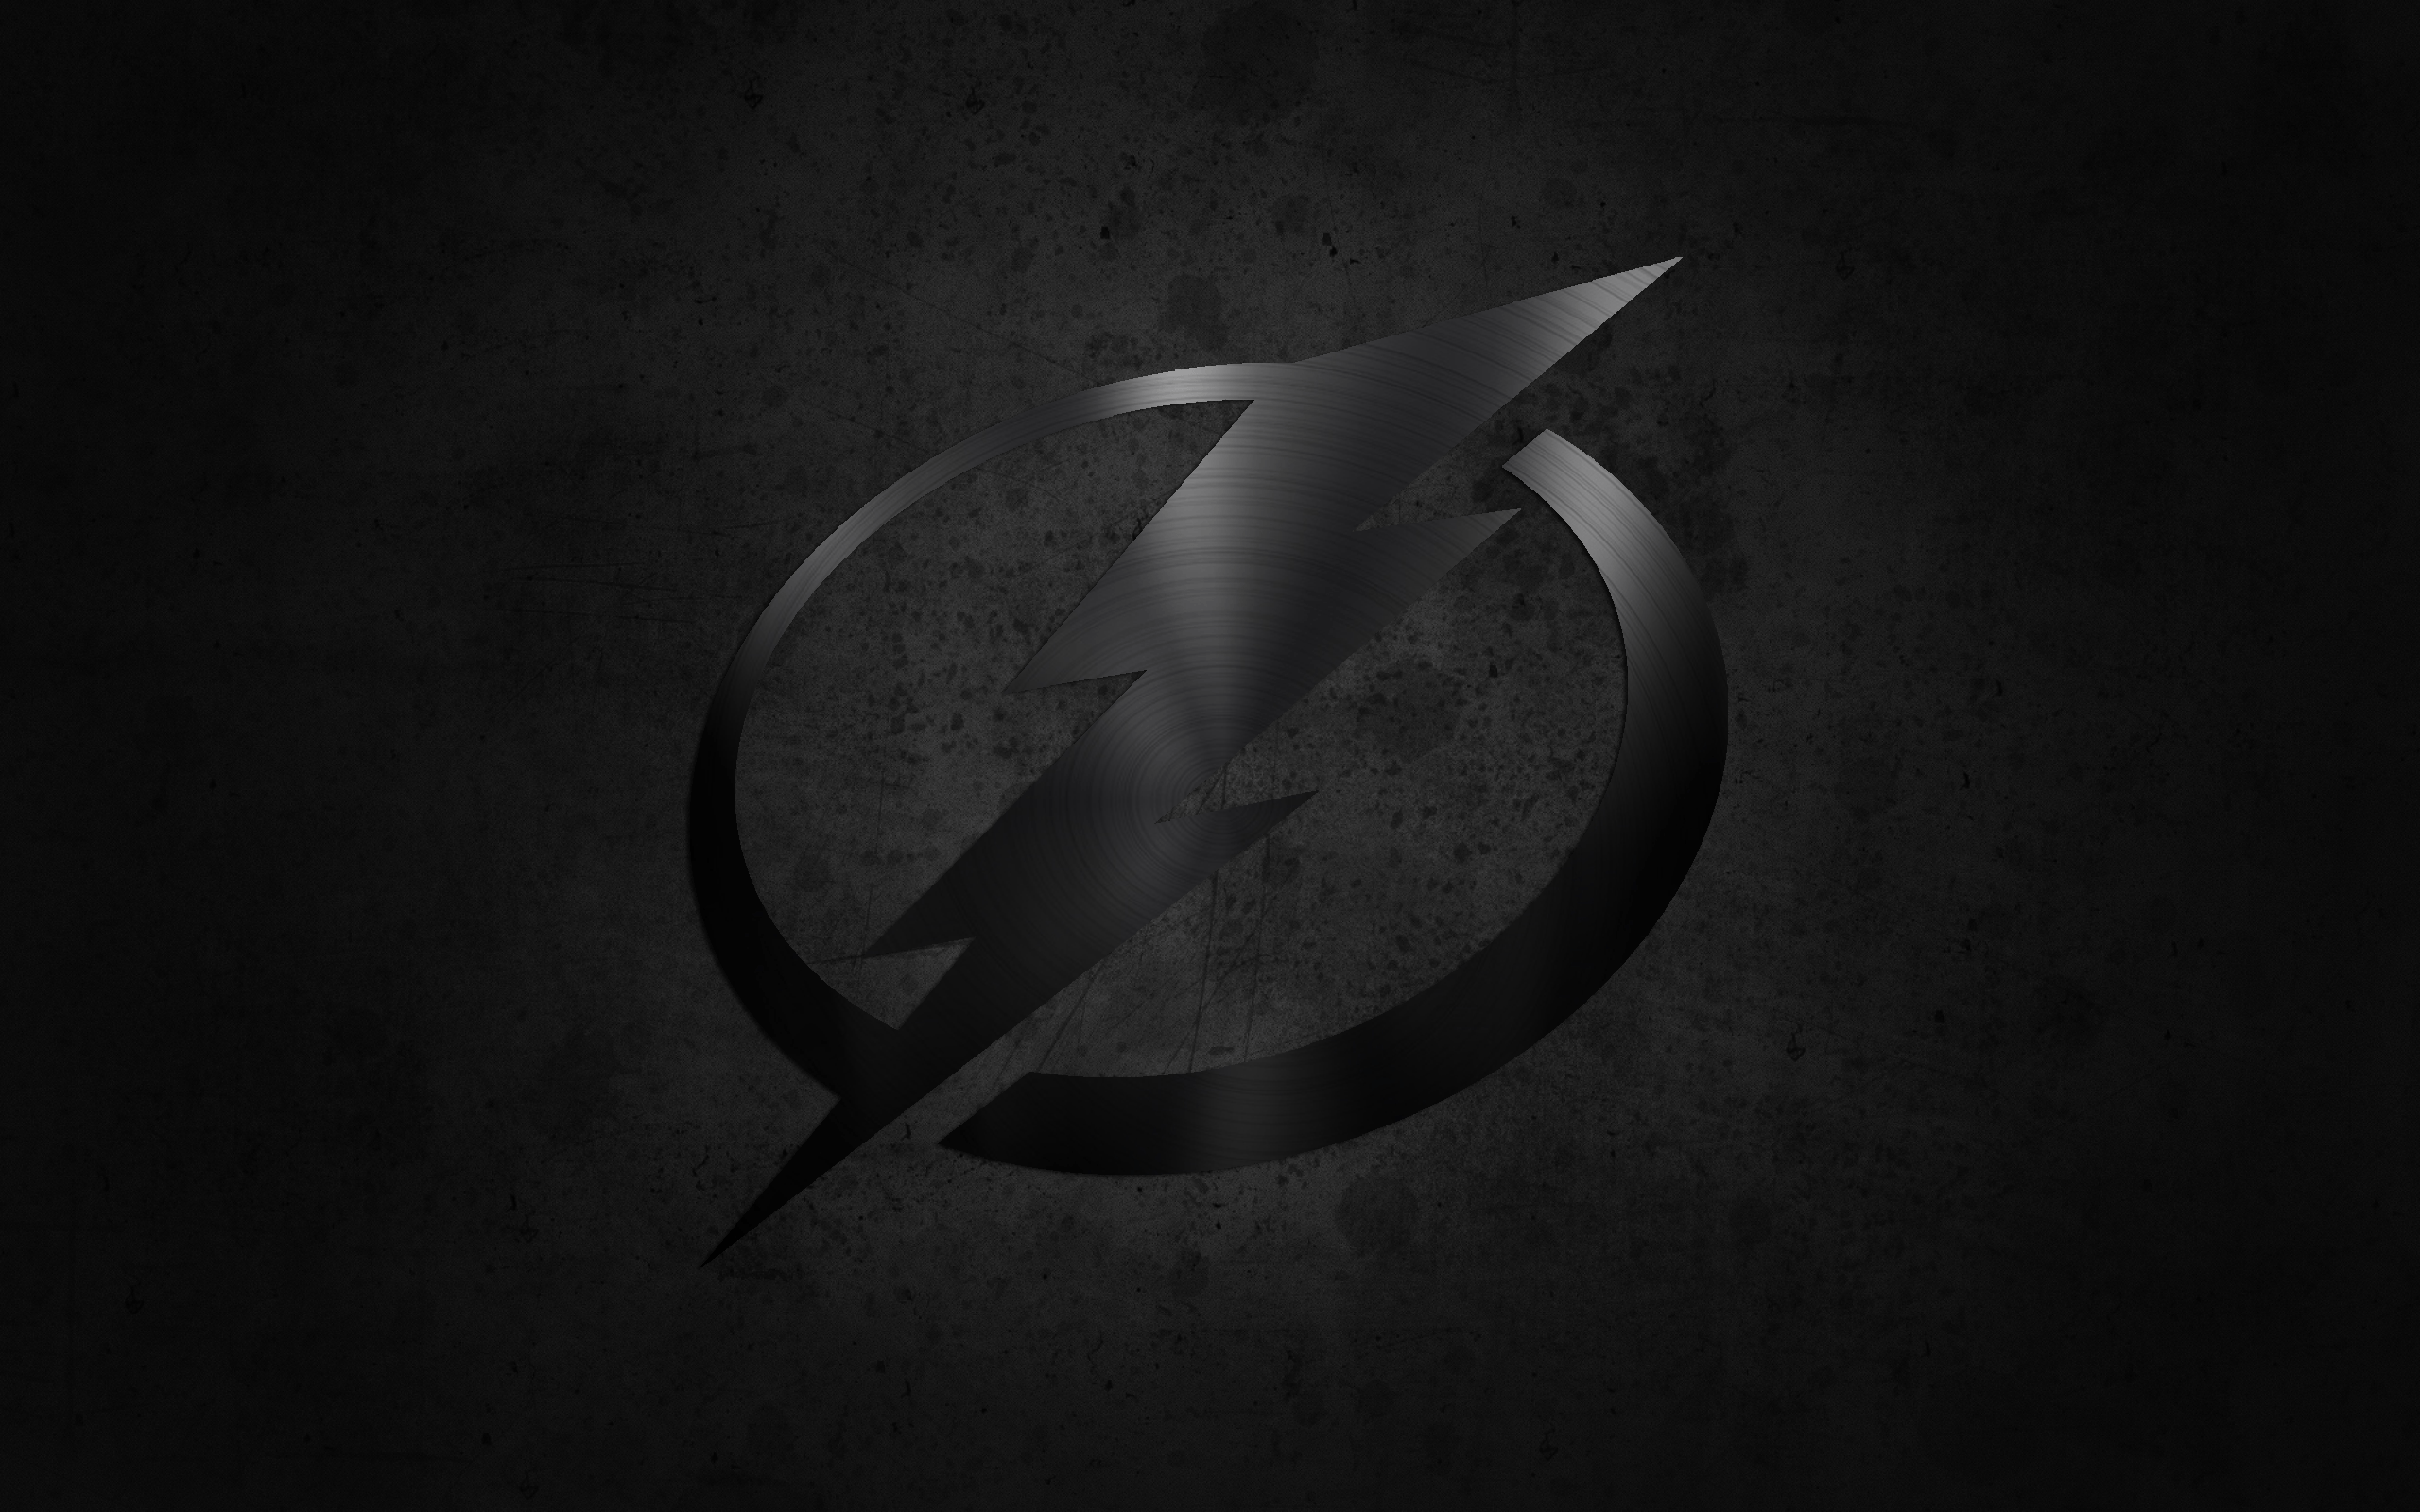 Got bored at work and made a Lightning logo wallpapers